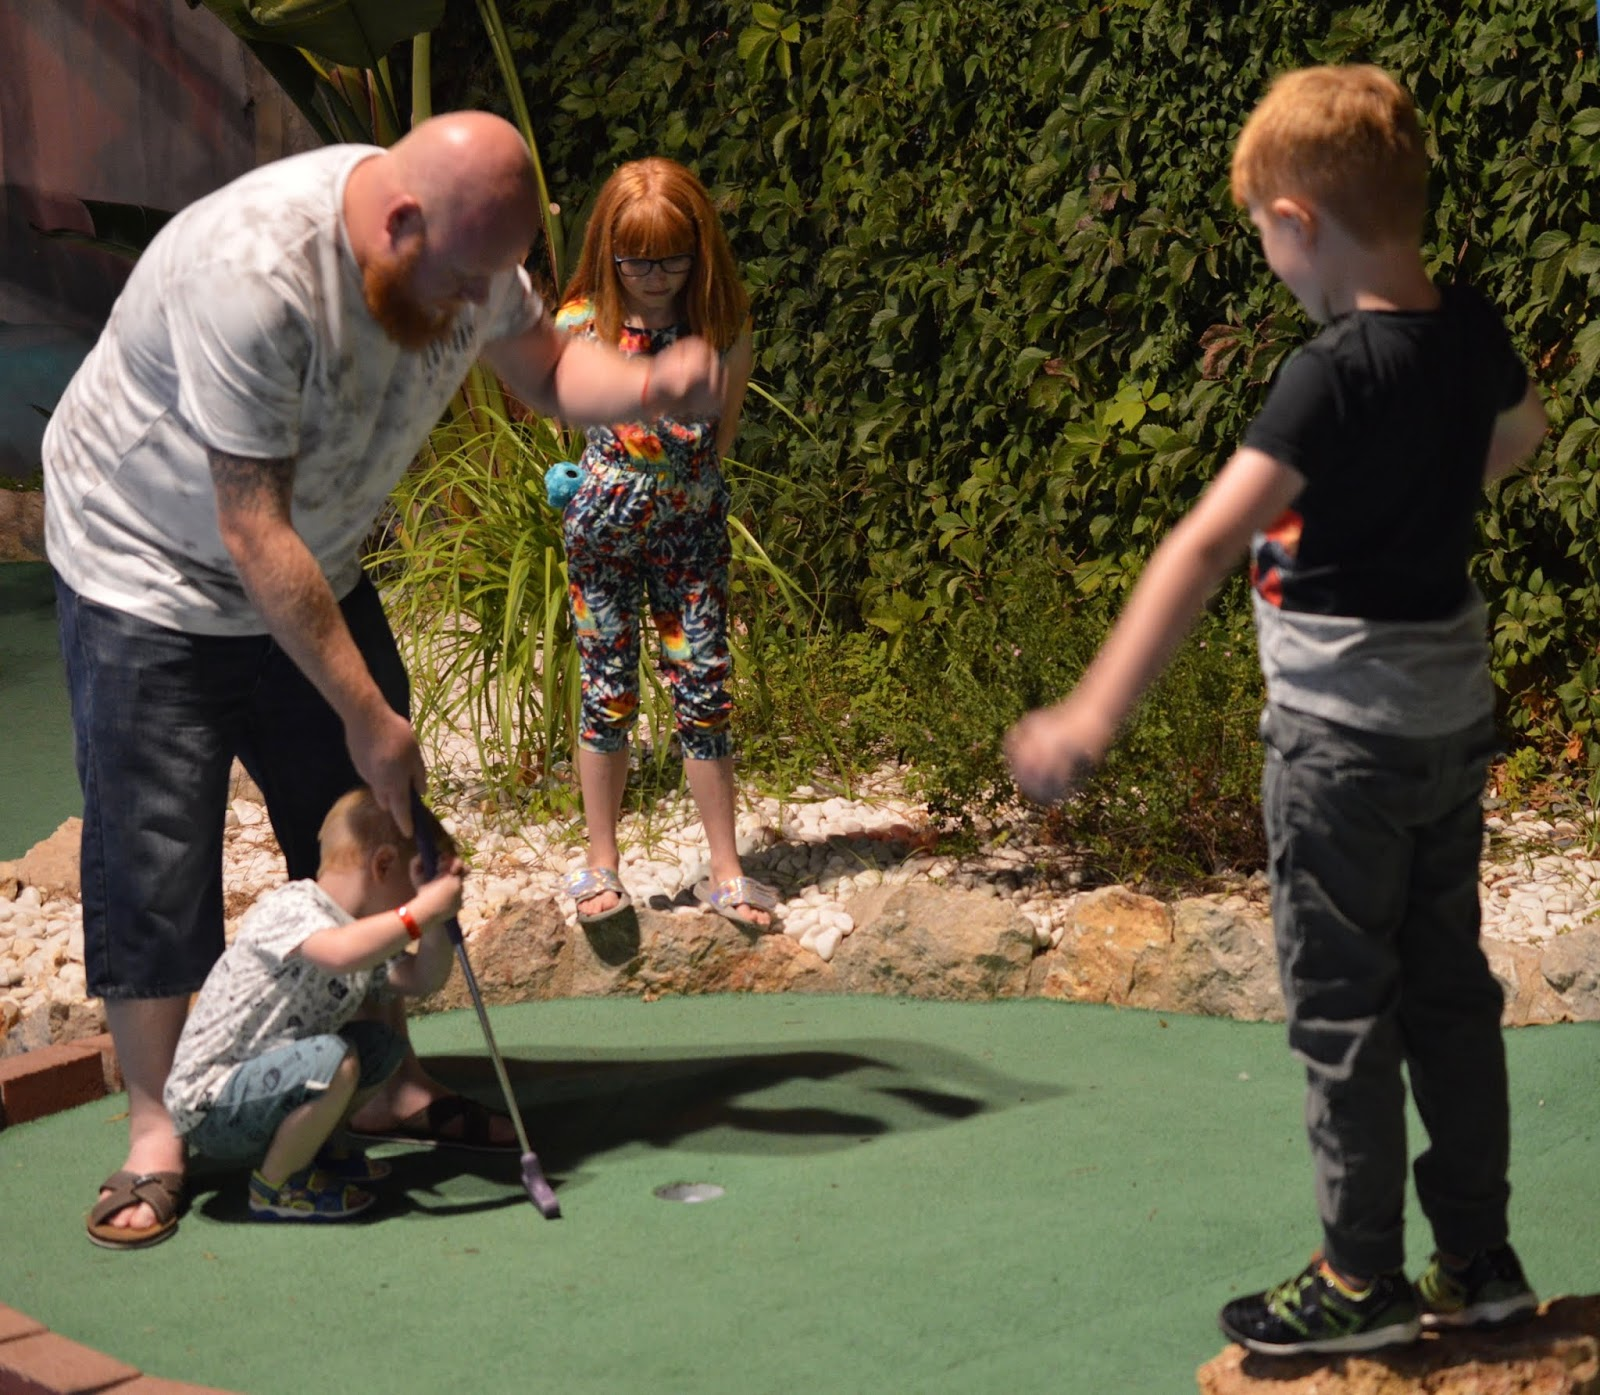 Pirates Village Santa Ponsa | Jet 2 Holidays Review  - crazy golf Santa Ponsa